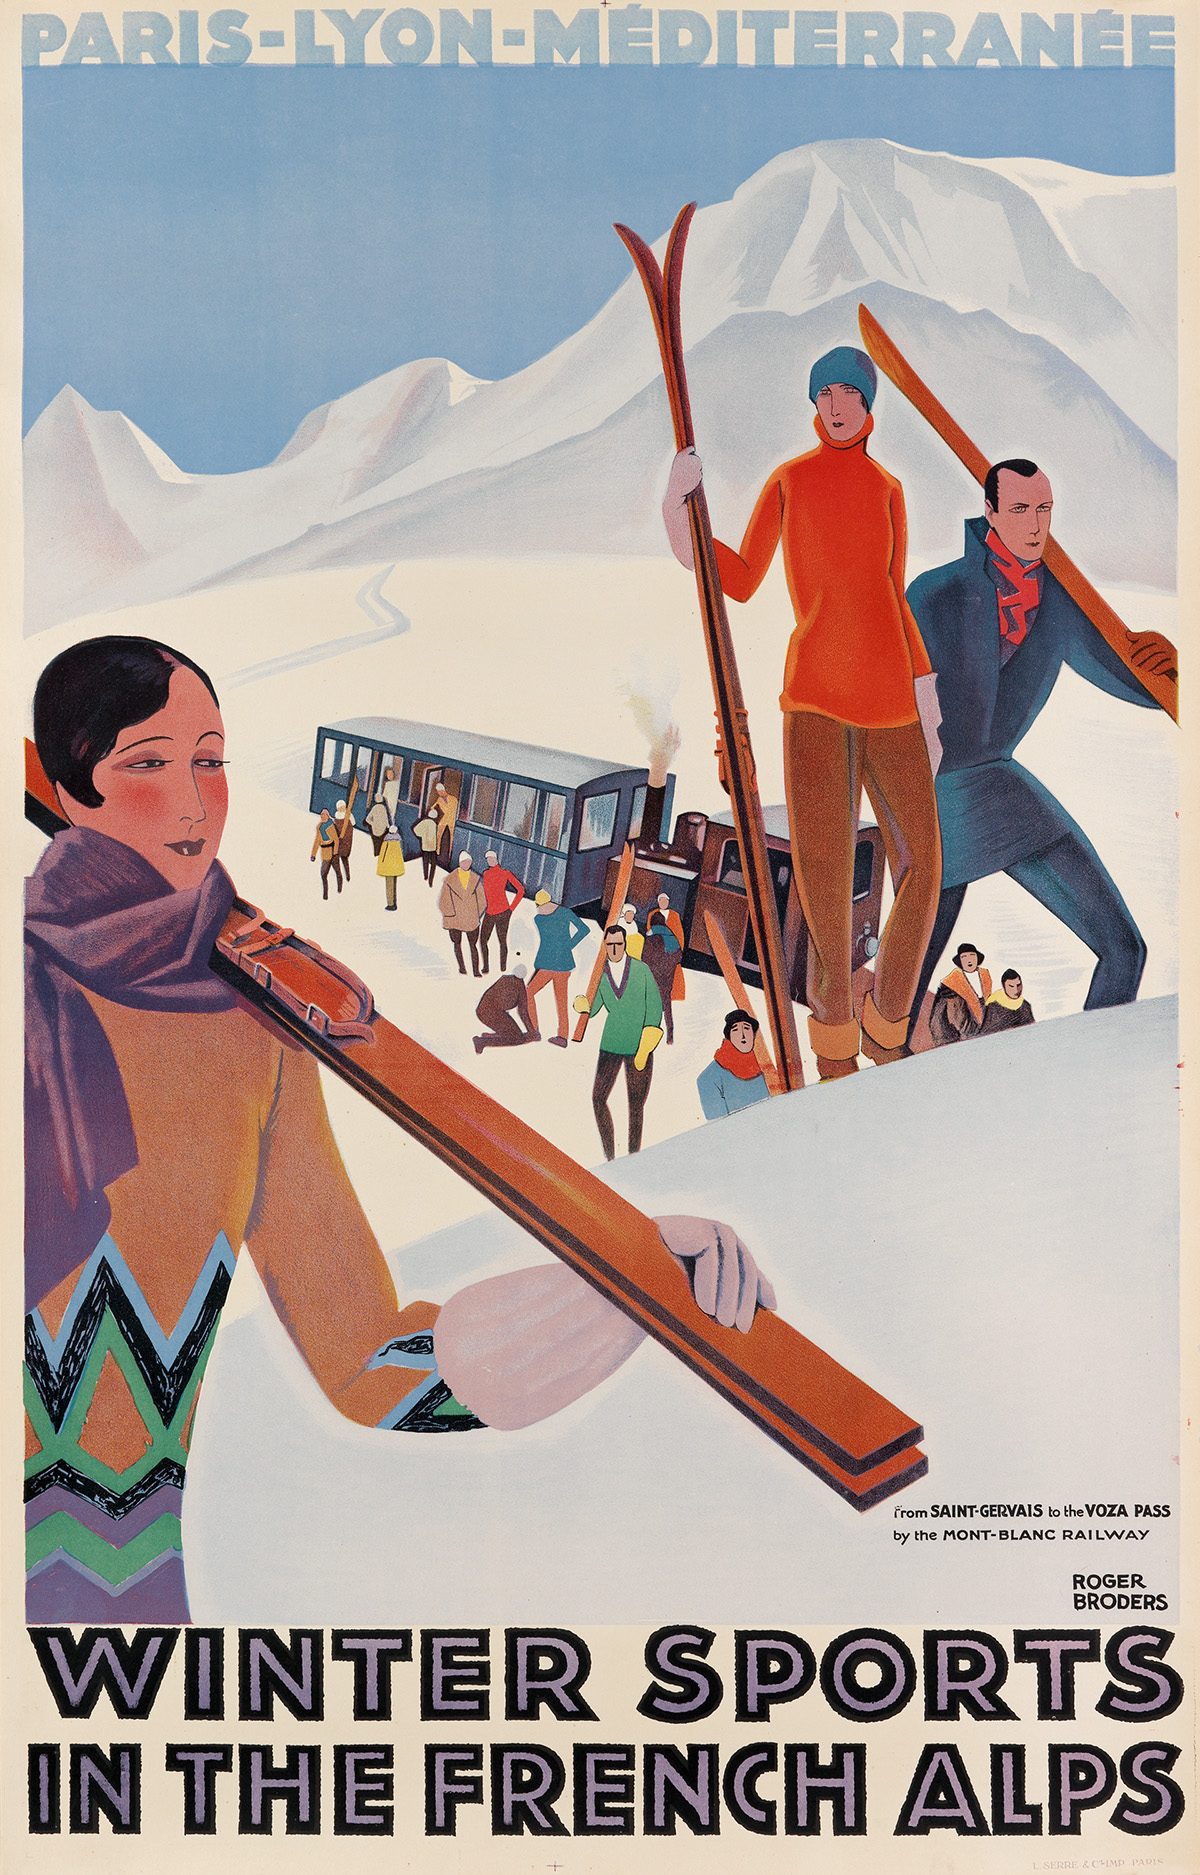 ROGER-BRODERS-(1883-1953)-WINTER-SPORTS-IN-THE-FRENCH-ALPS-Circa-1929-40x25-inches-101x64-cm-Lucien-Serre-Paris